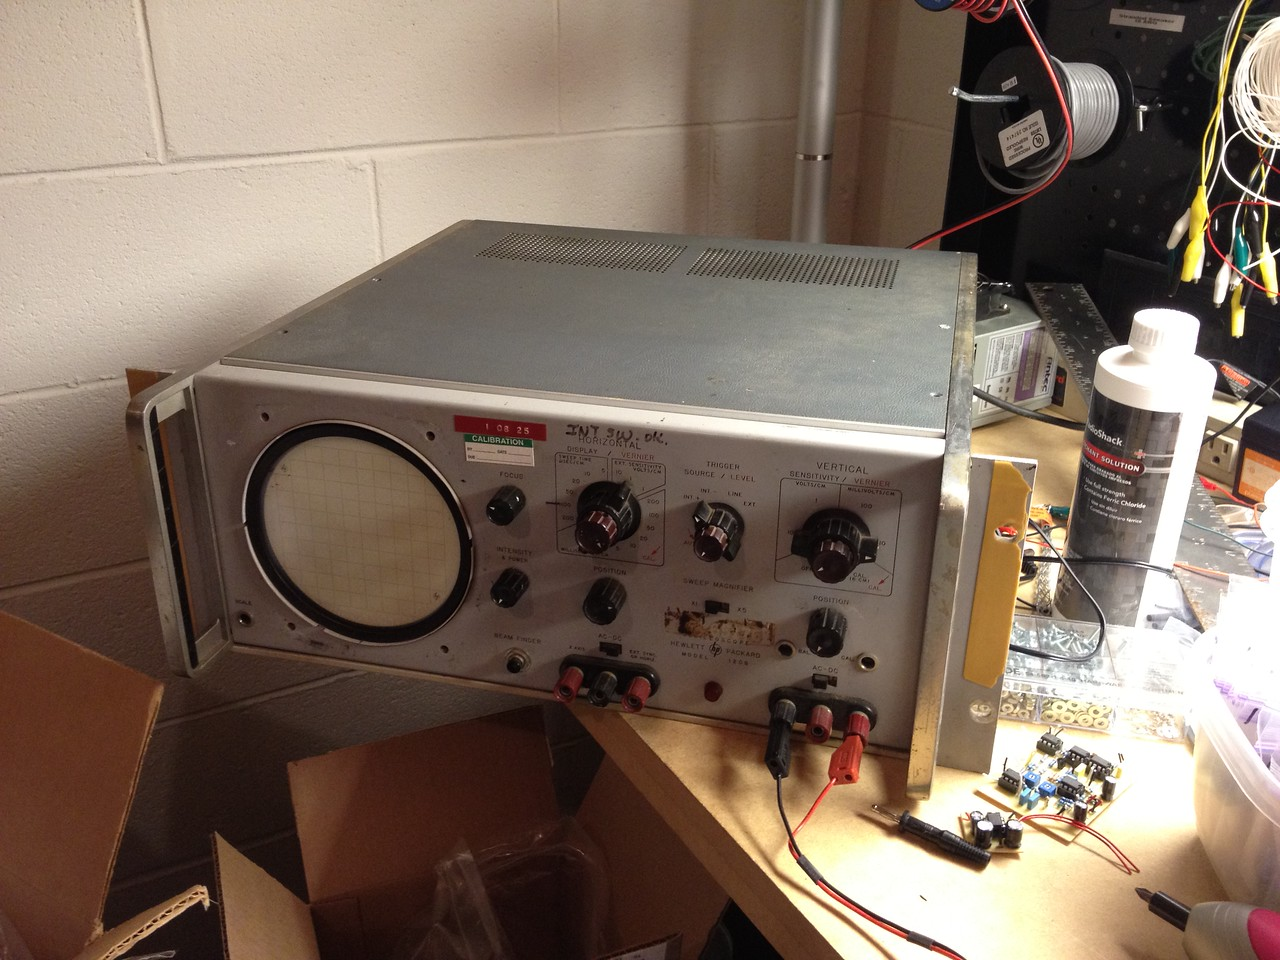 I picked up a '50s HP 120B oscilloscope for $15 on Craigslist. I wonder if it works?